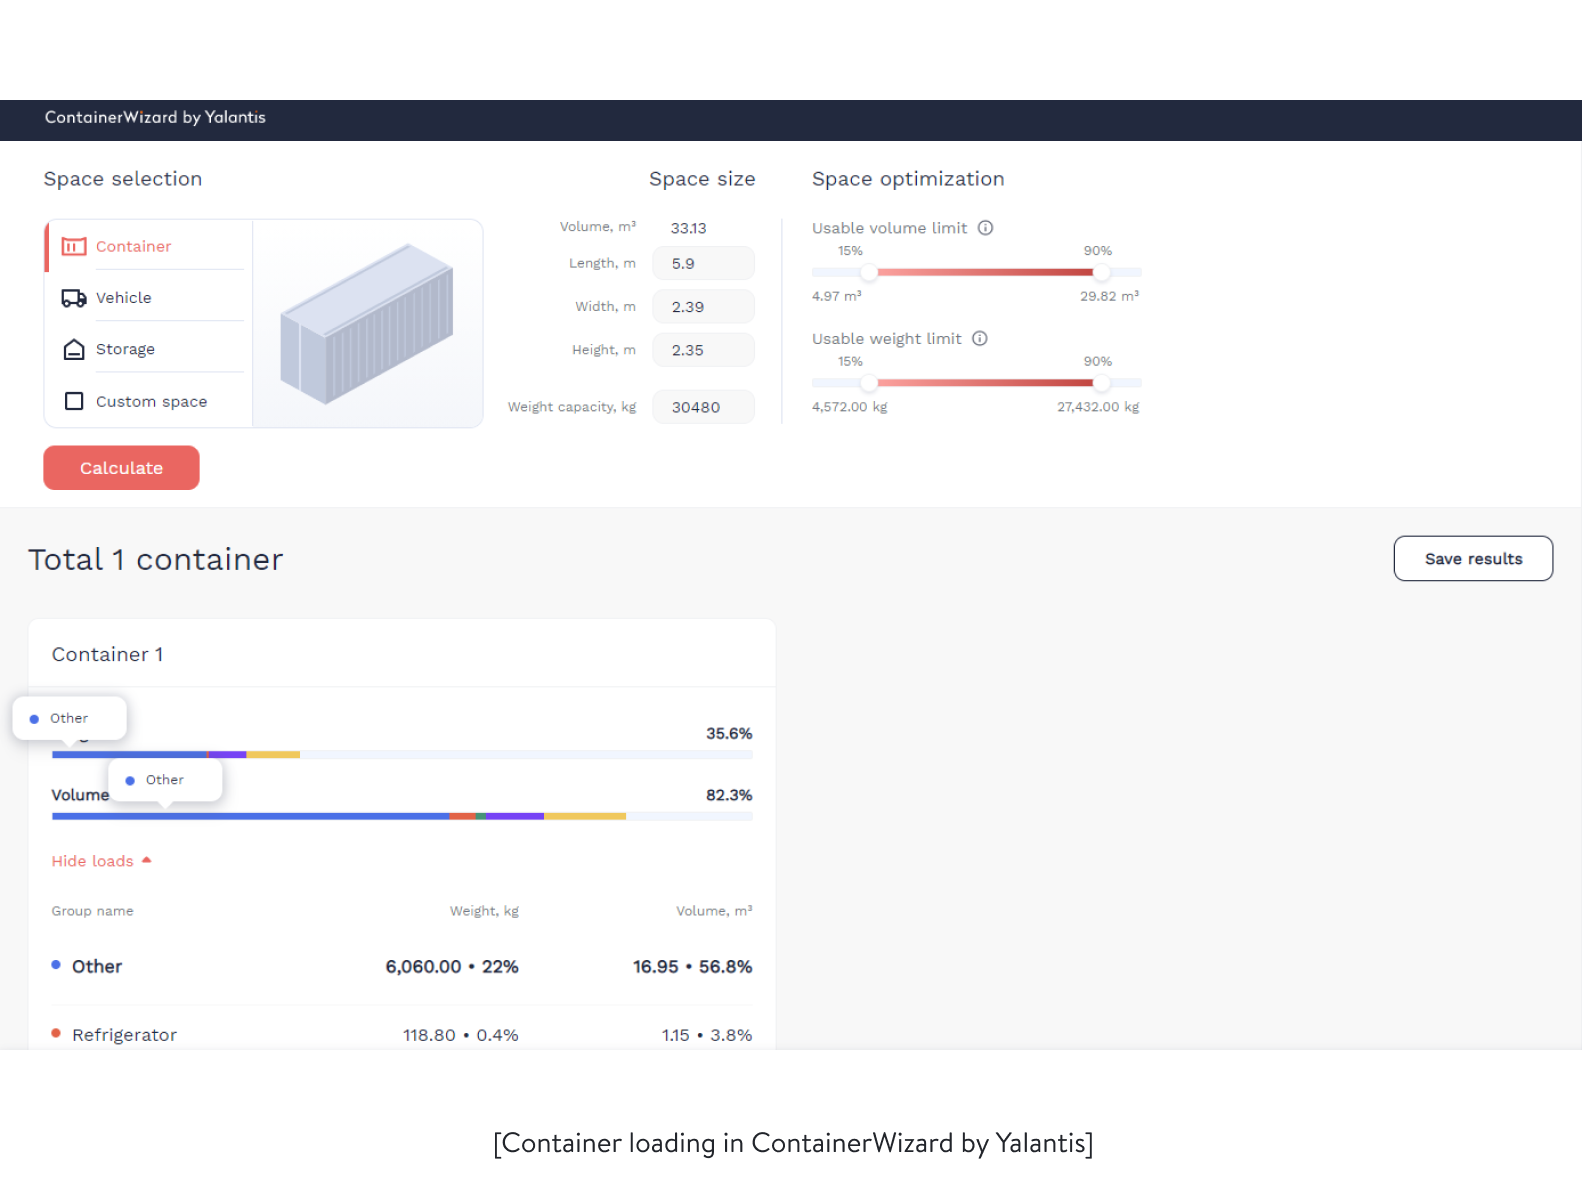 containerwizard container loading